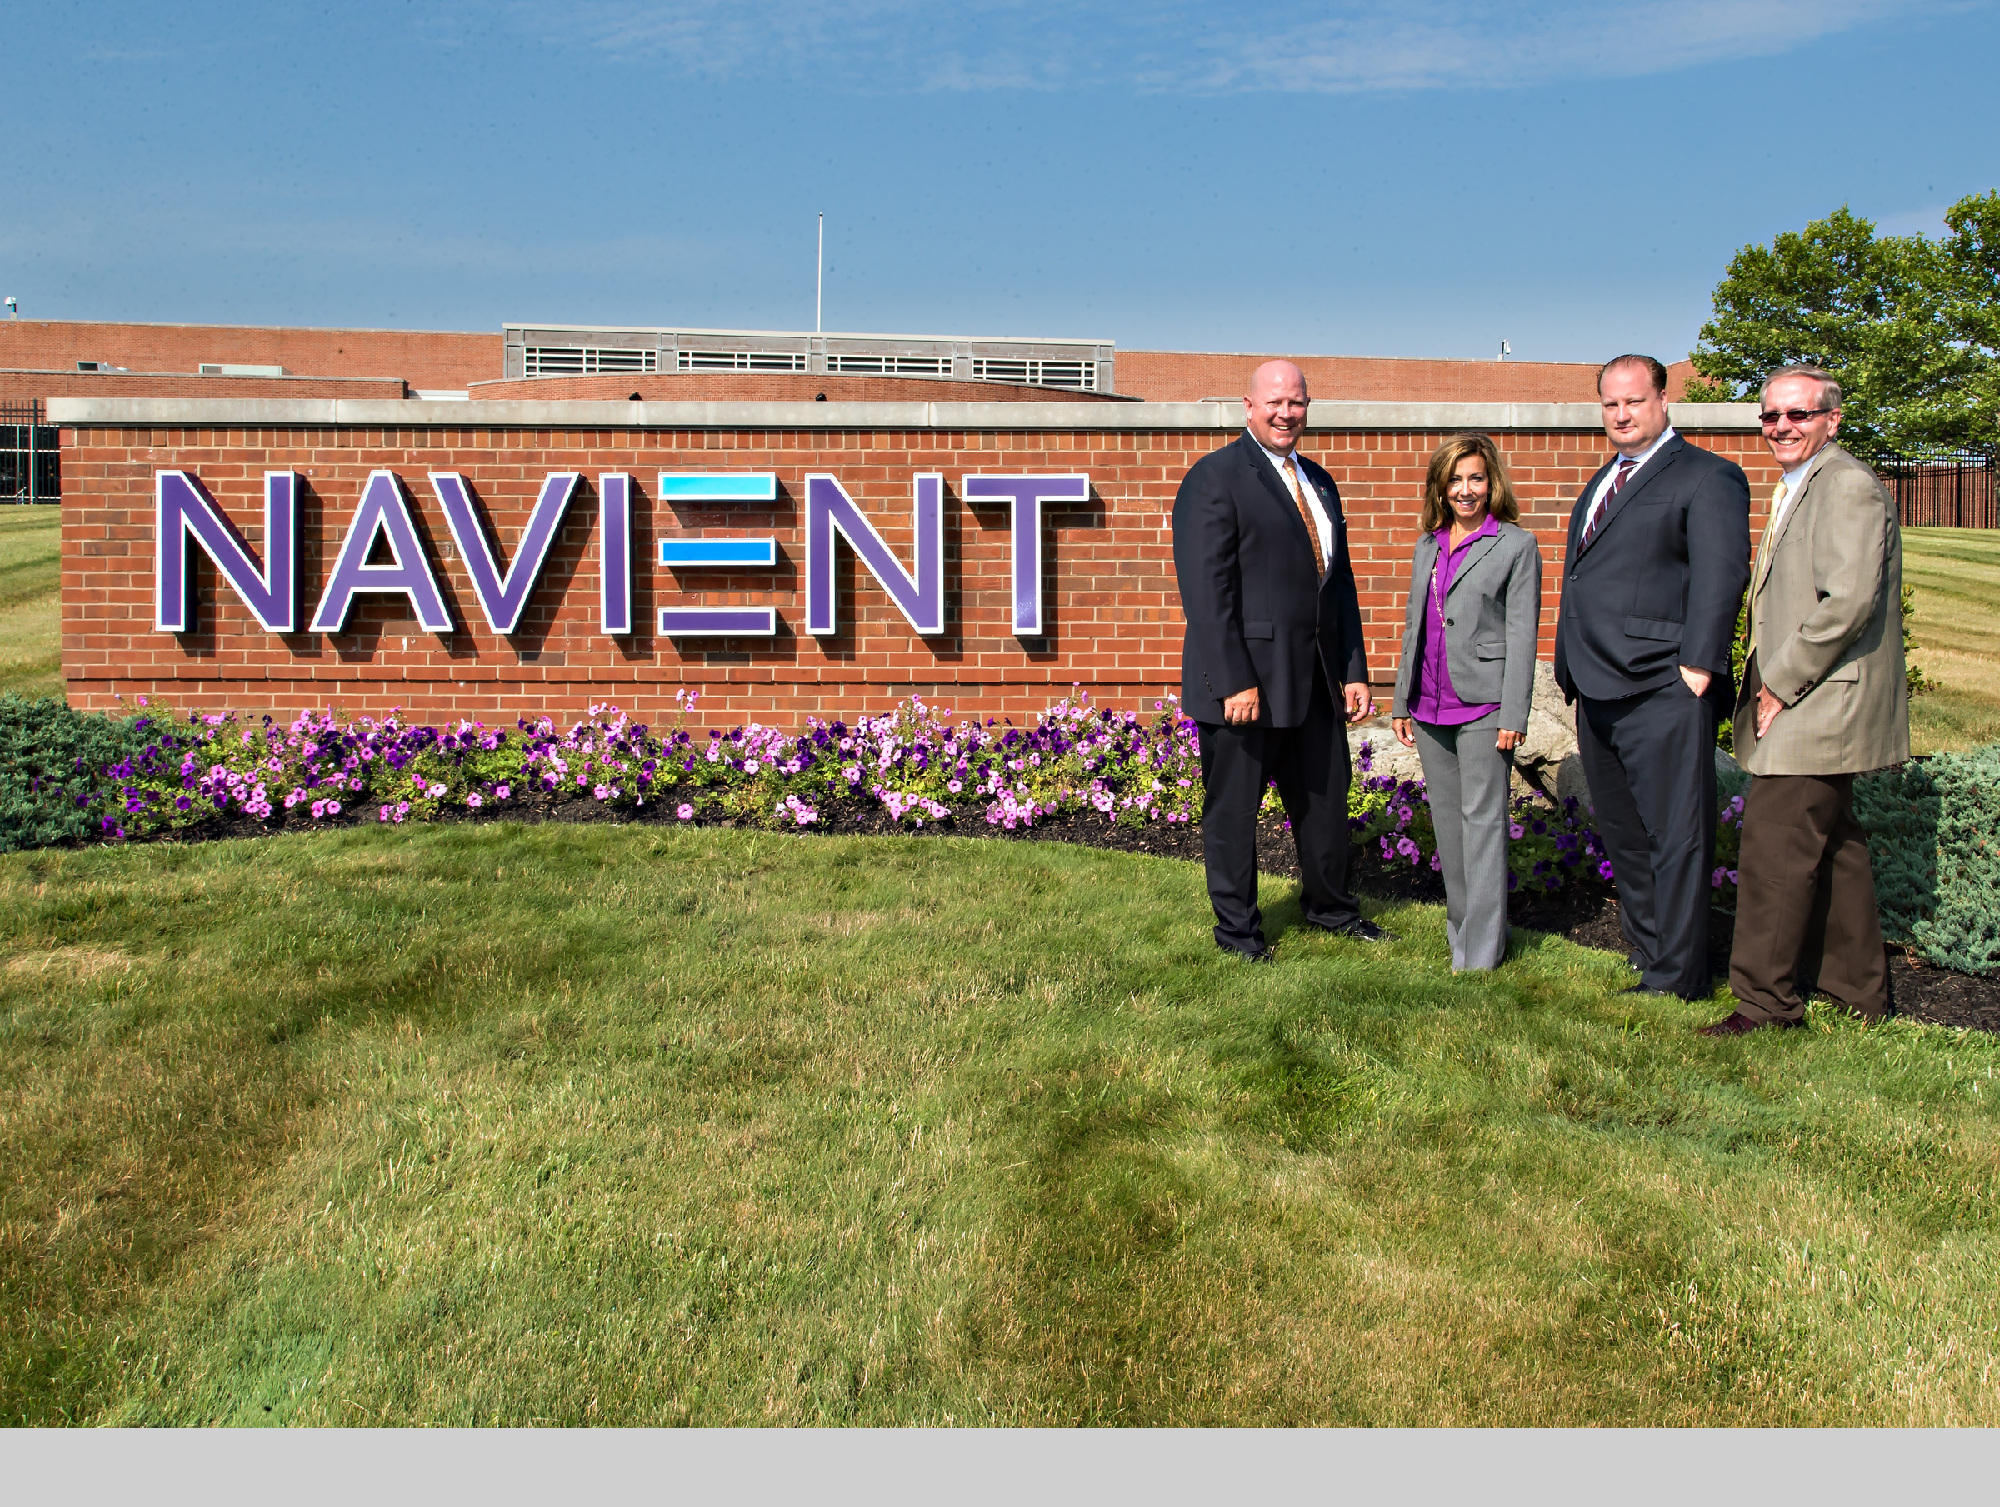 Navient plunges after subprime loan lawsuit